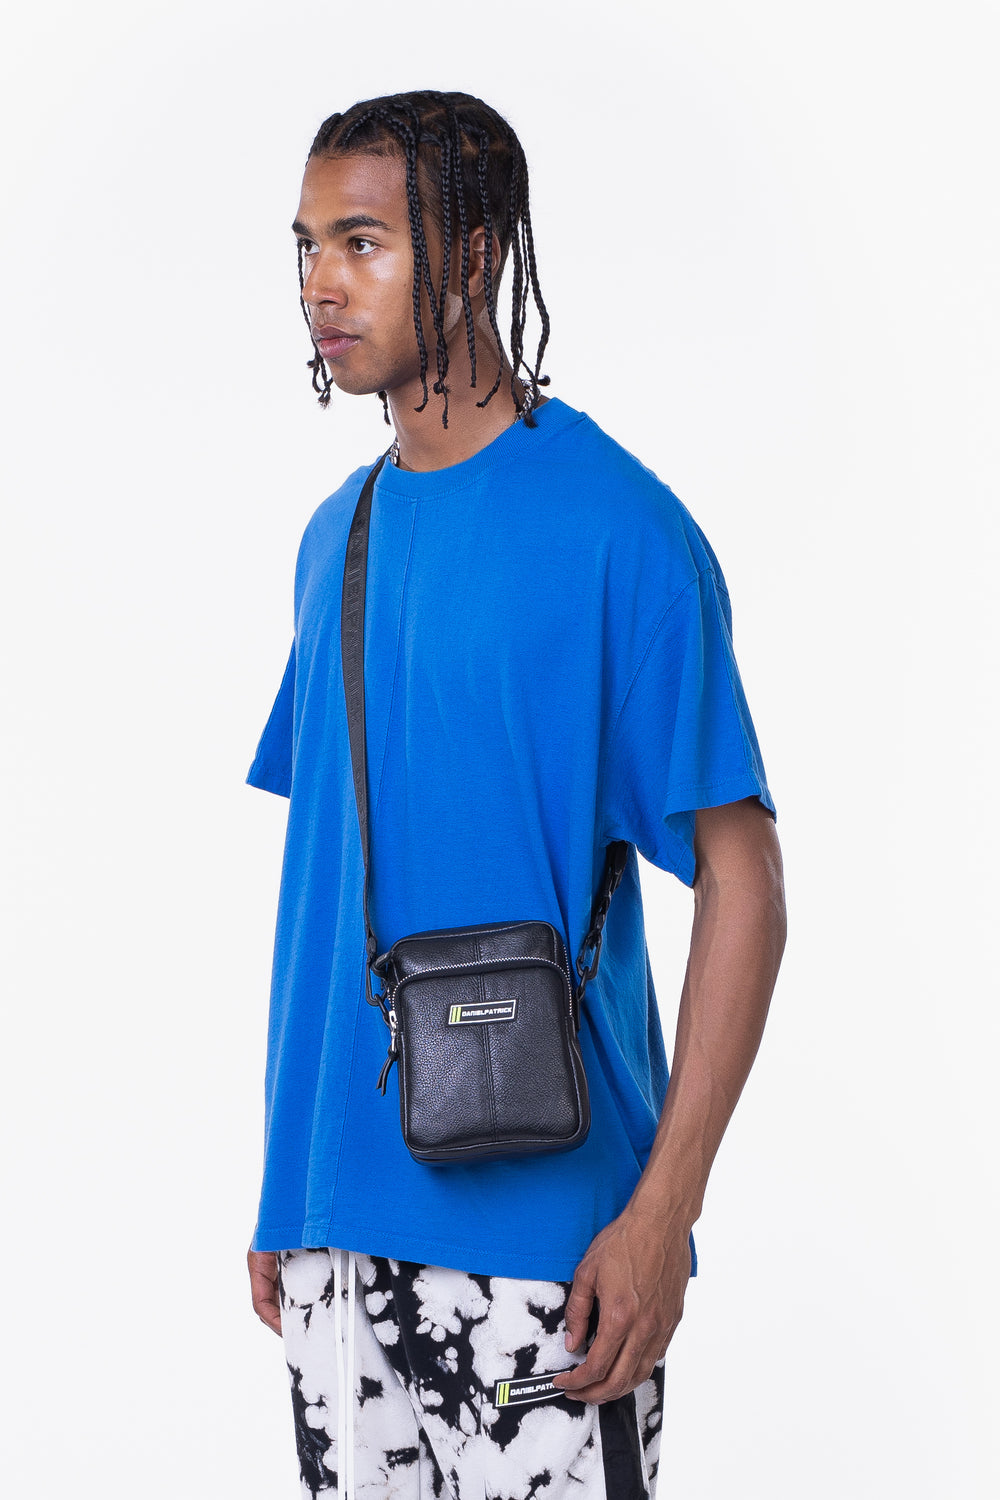 DP shoulder bag / black